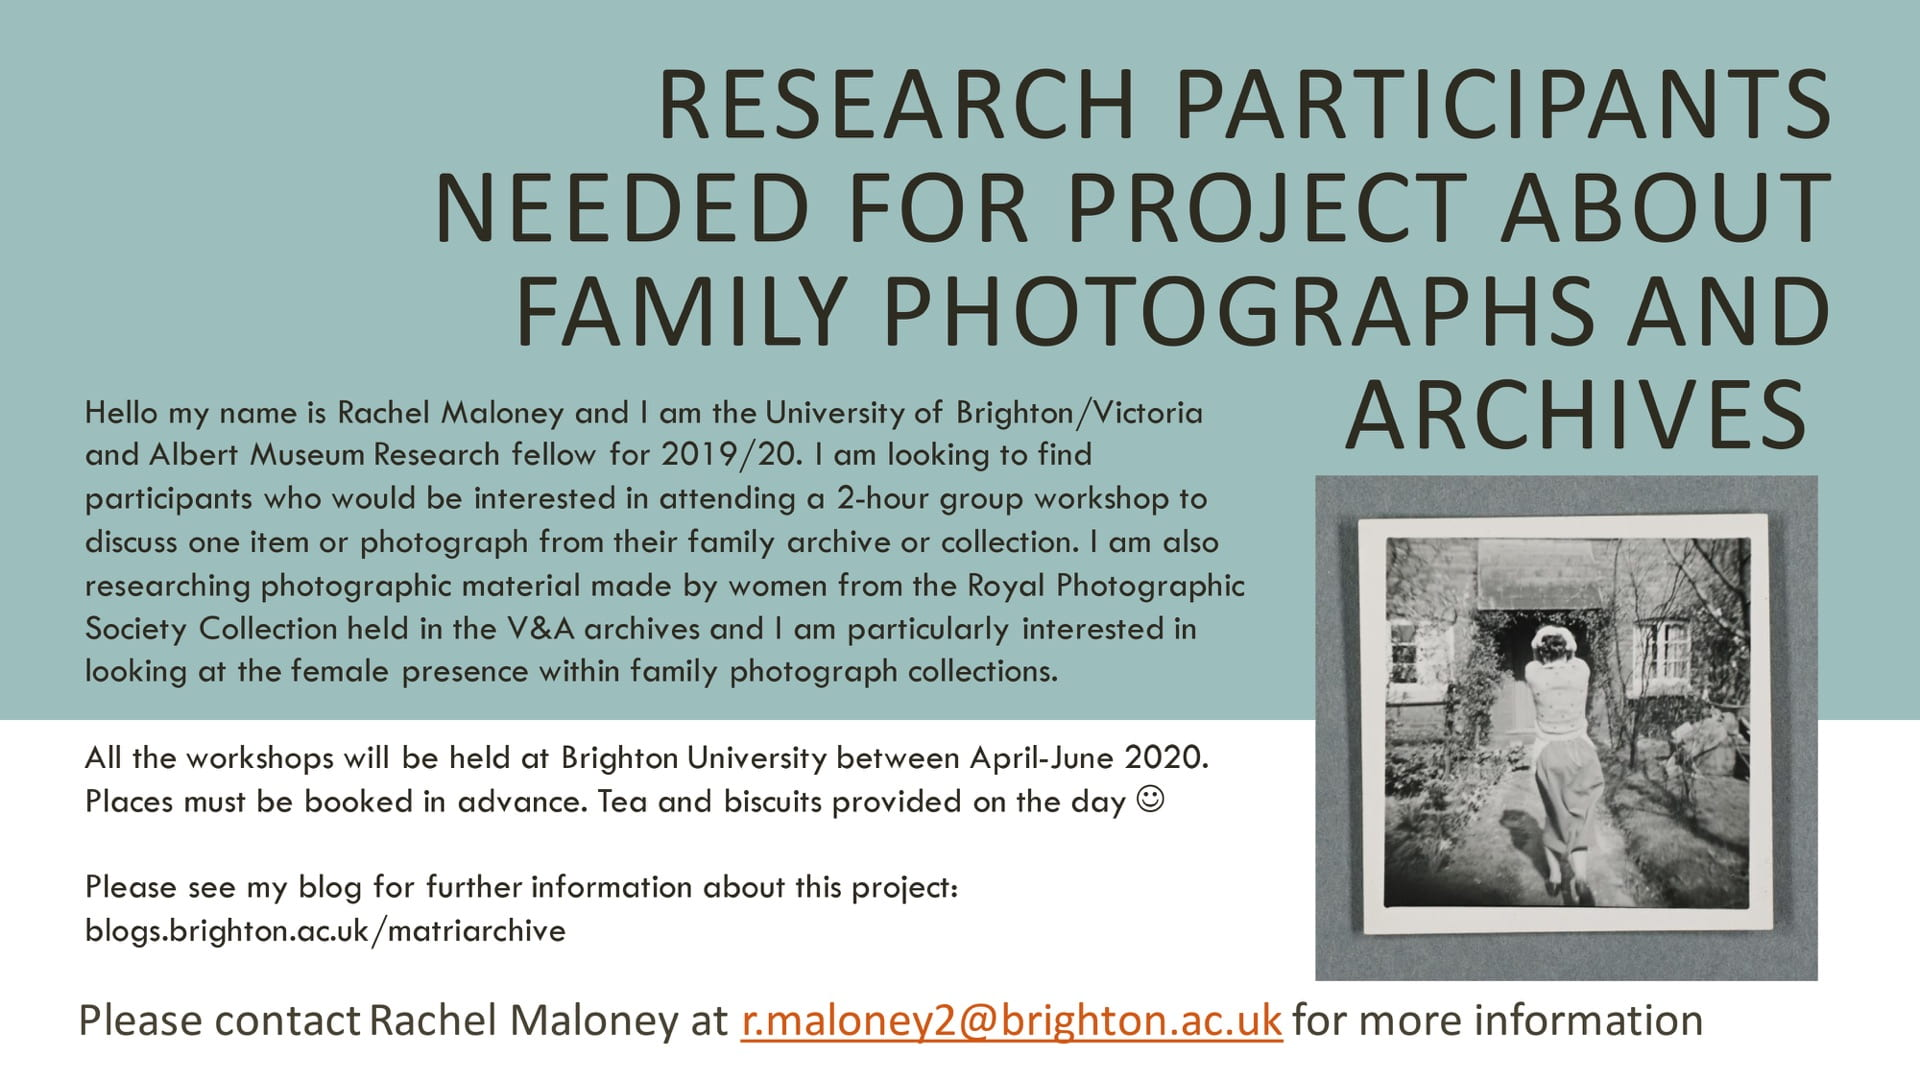 advert for research particpants to take part in this project about family photographs and archives